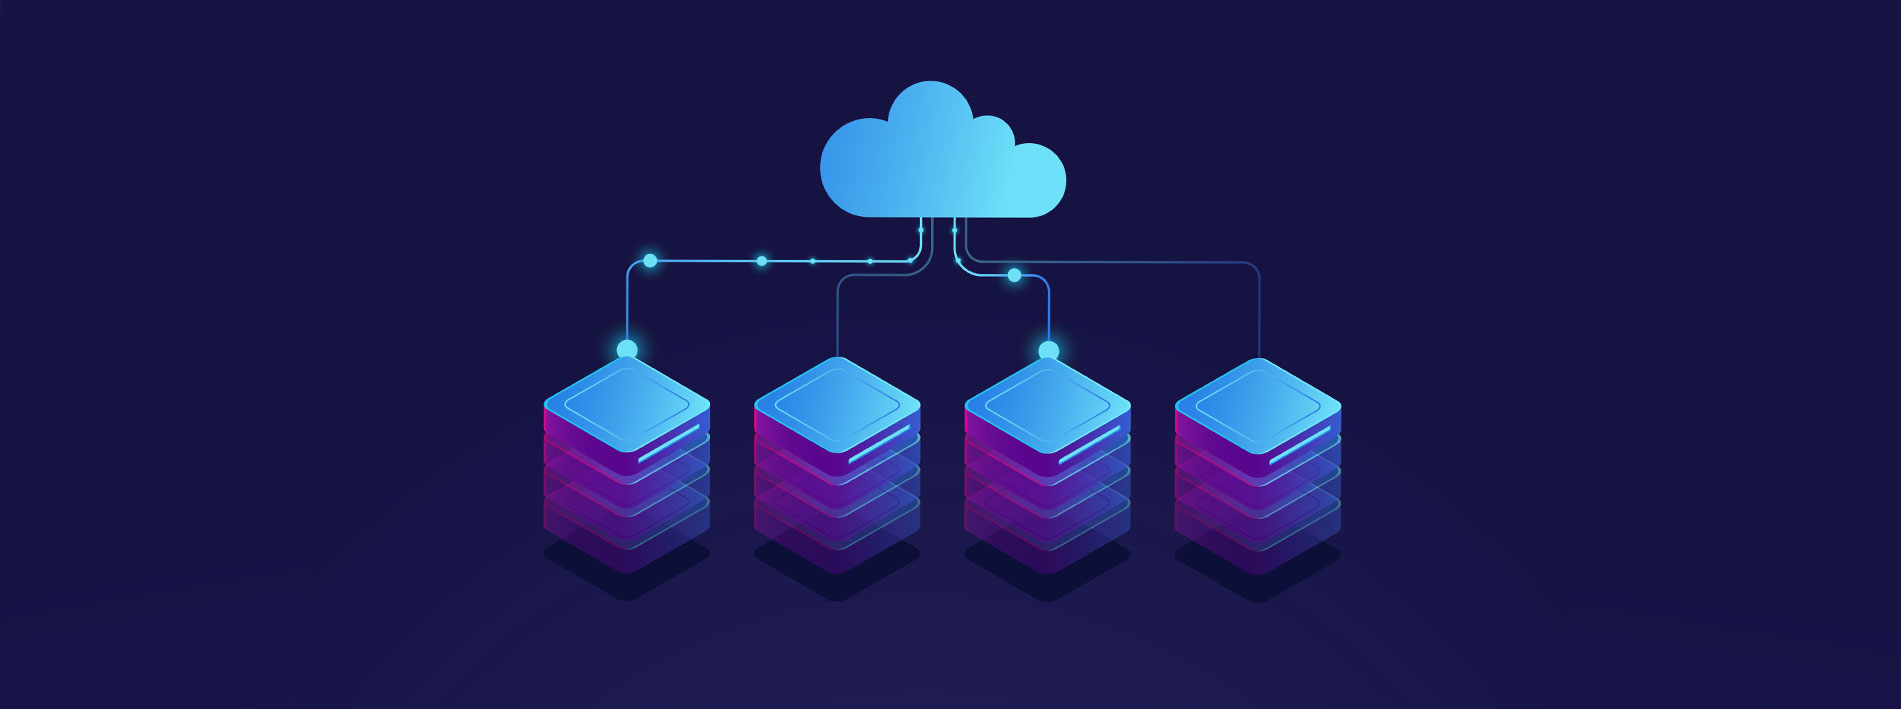 Graphic representing cloud connectivity to devices